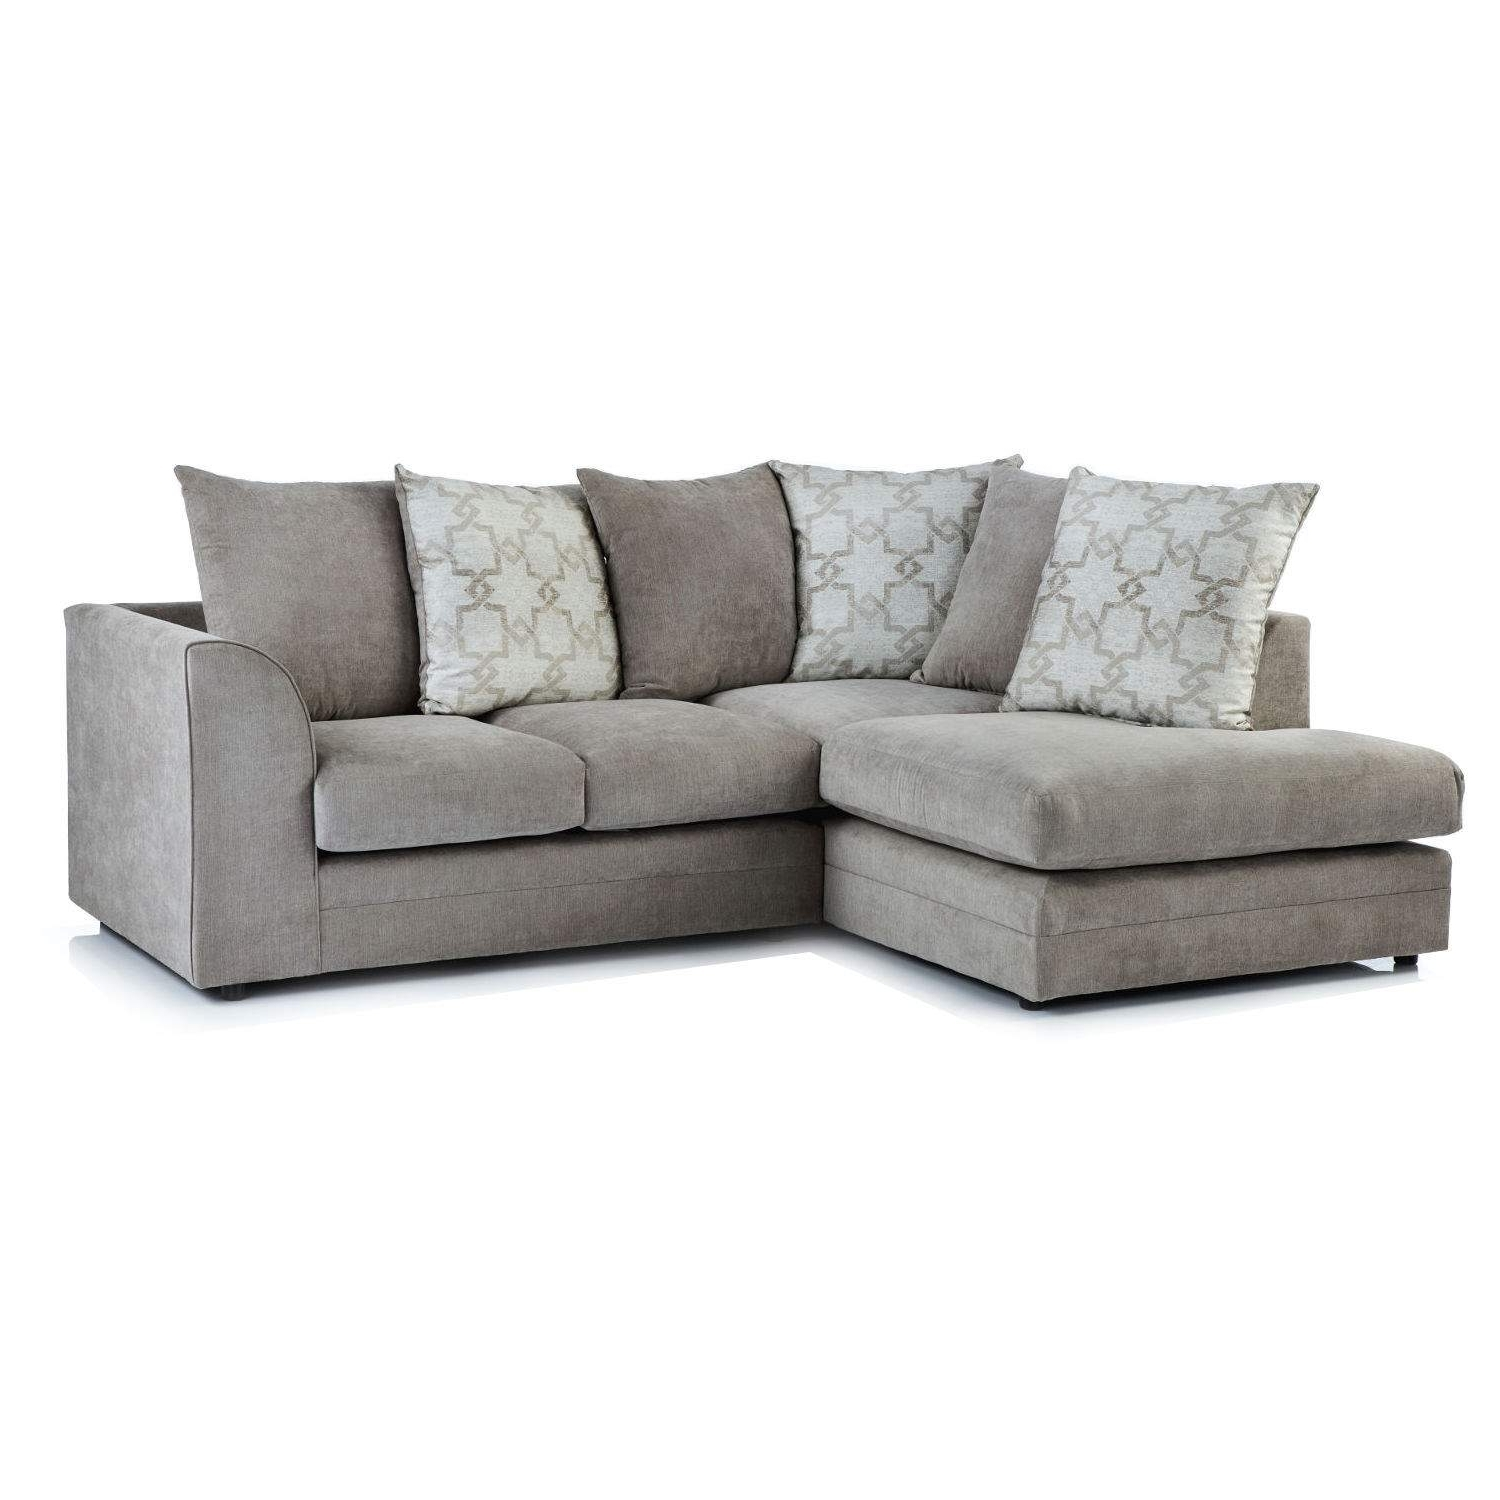 Washington Fabric Corner Chaise Sofa – Next Day Delivery Within Favorite Fabric Corner Sofas (Gallery 7 of 20)